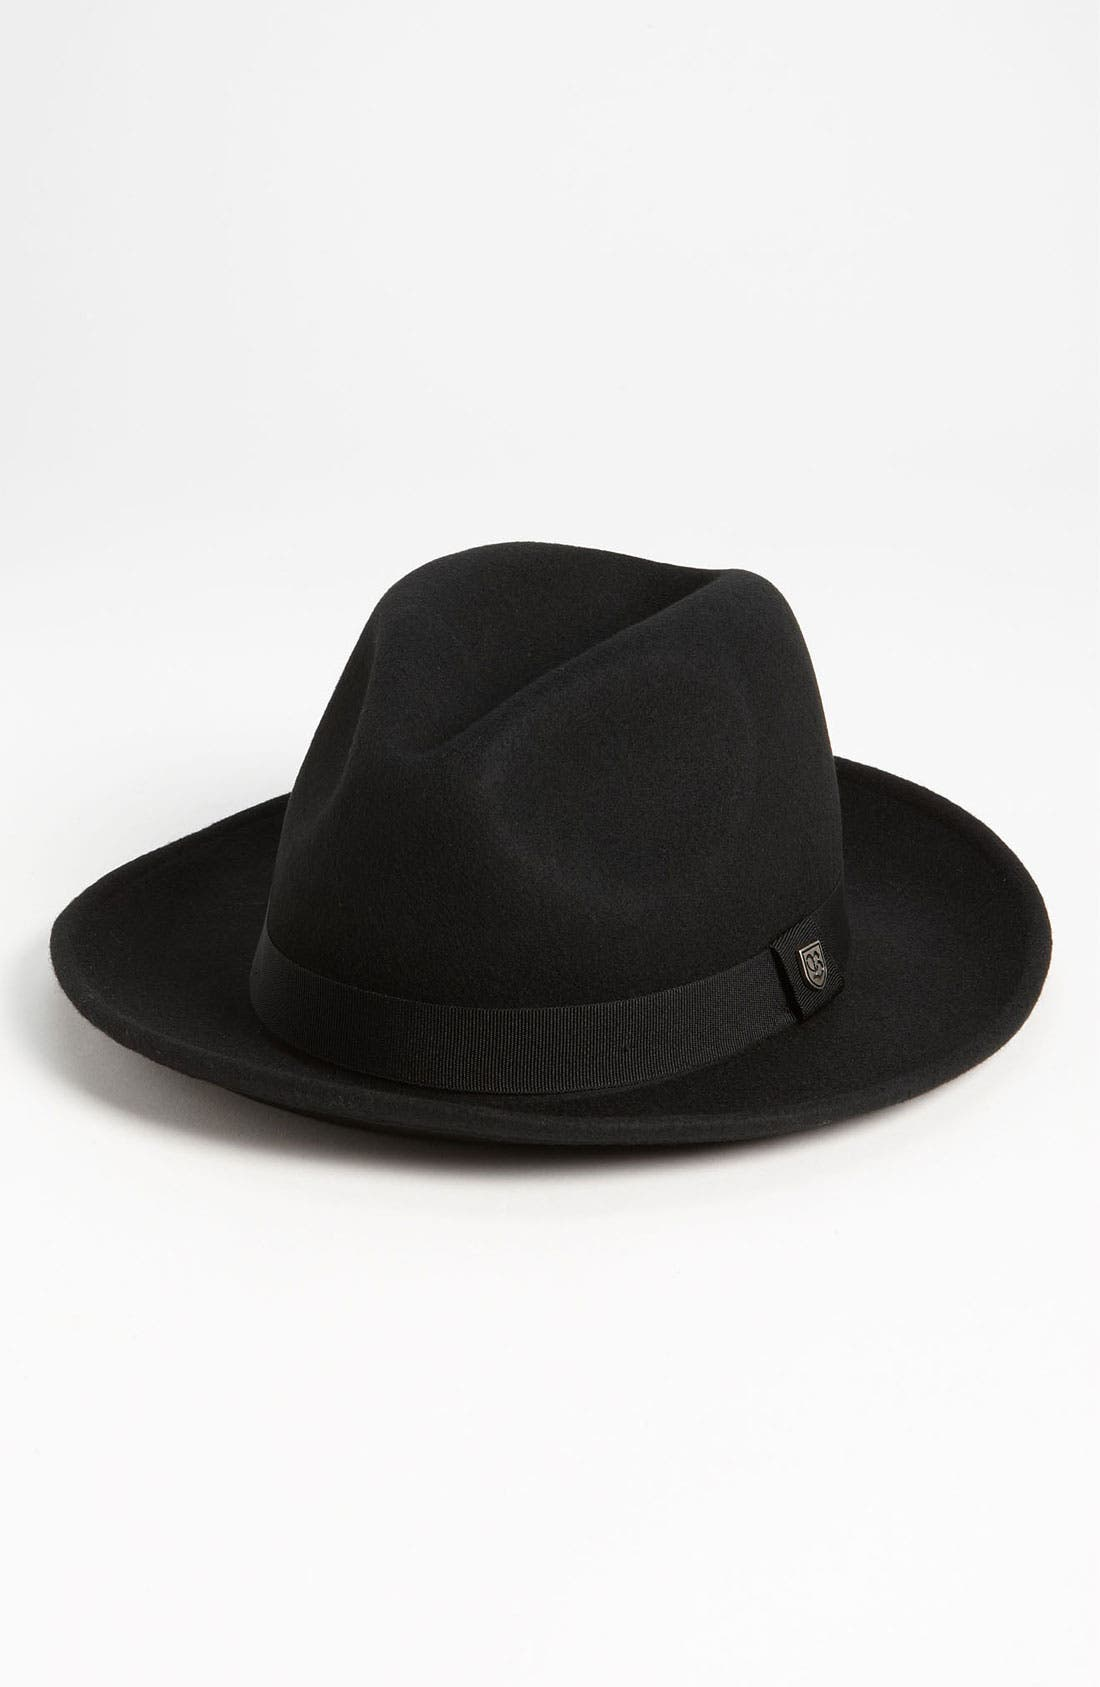 Alternate Image 1 Selected - Brixton 'Chapter' Felted Wool Fedora